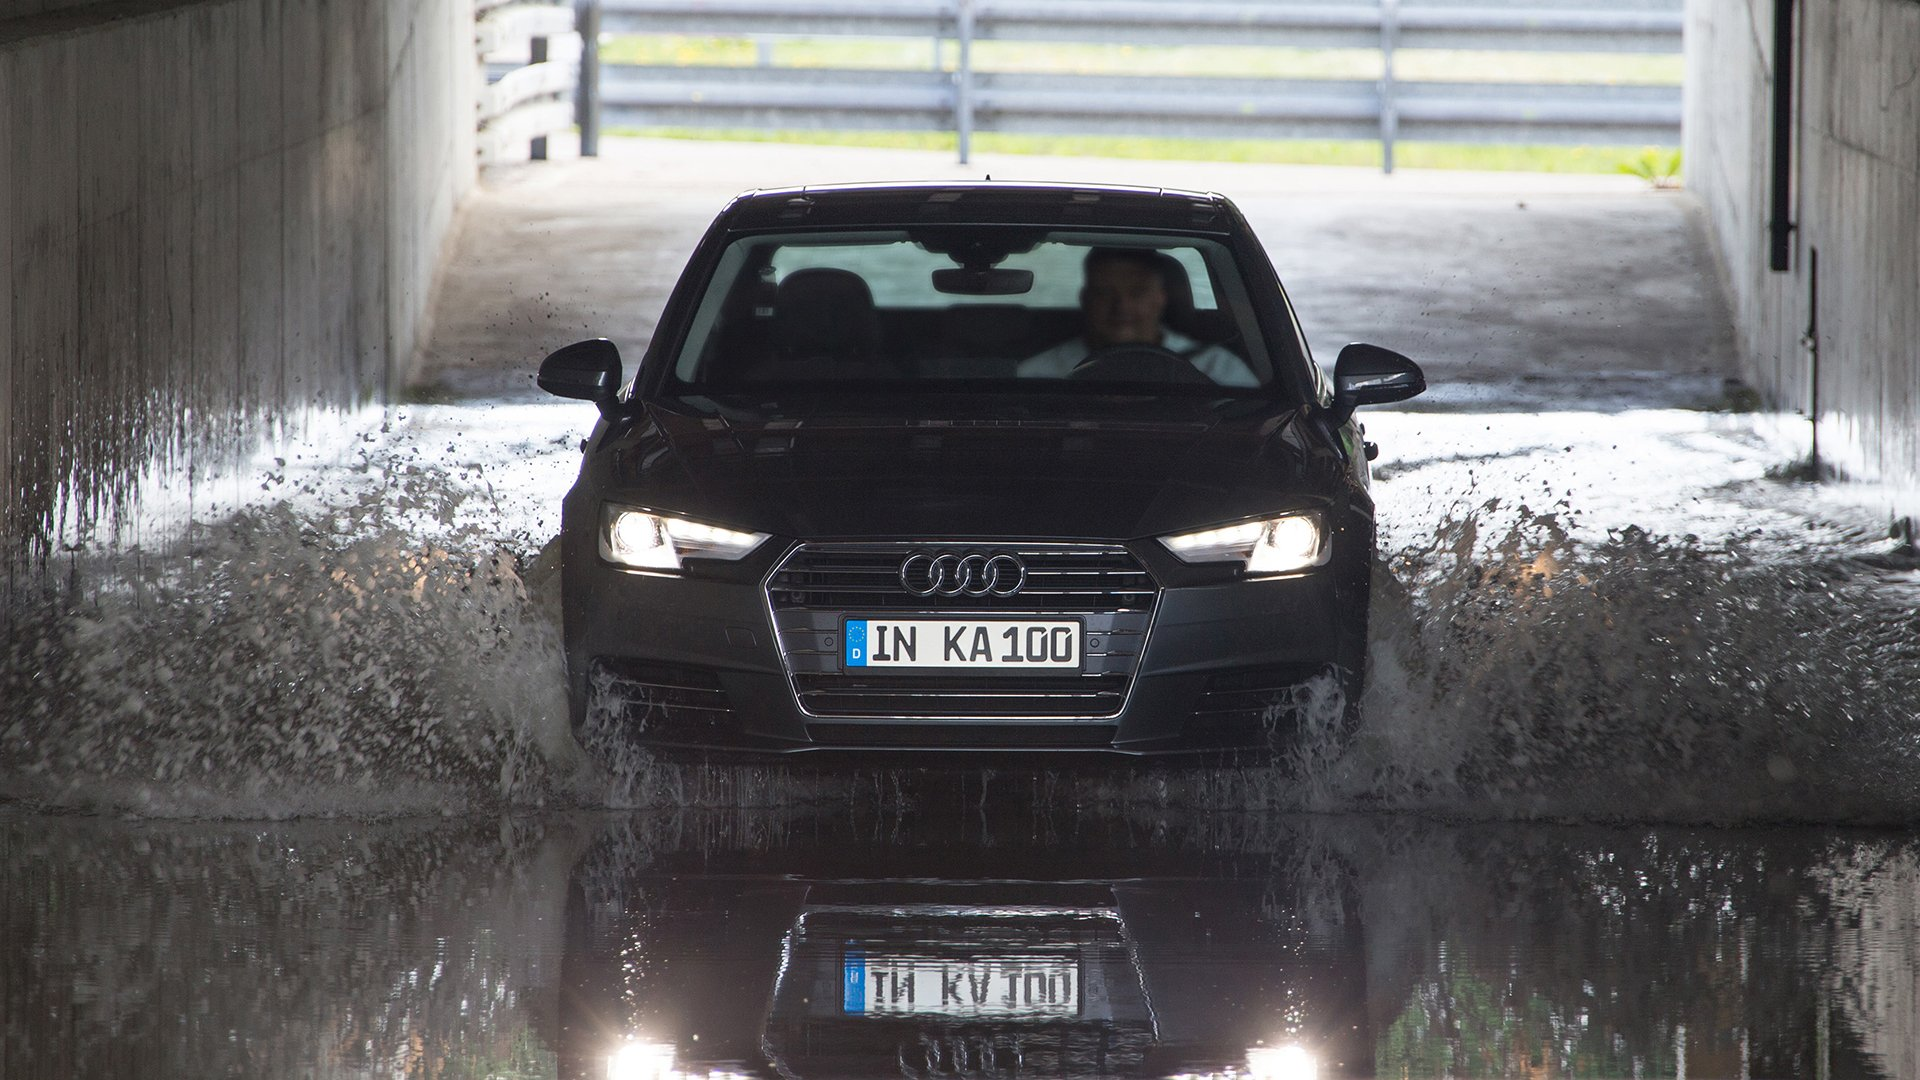 A car lifetime in fast-forward mode: 100th Audi Quality Assurance INKA test © Volkswagen AG